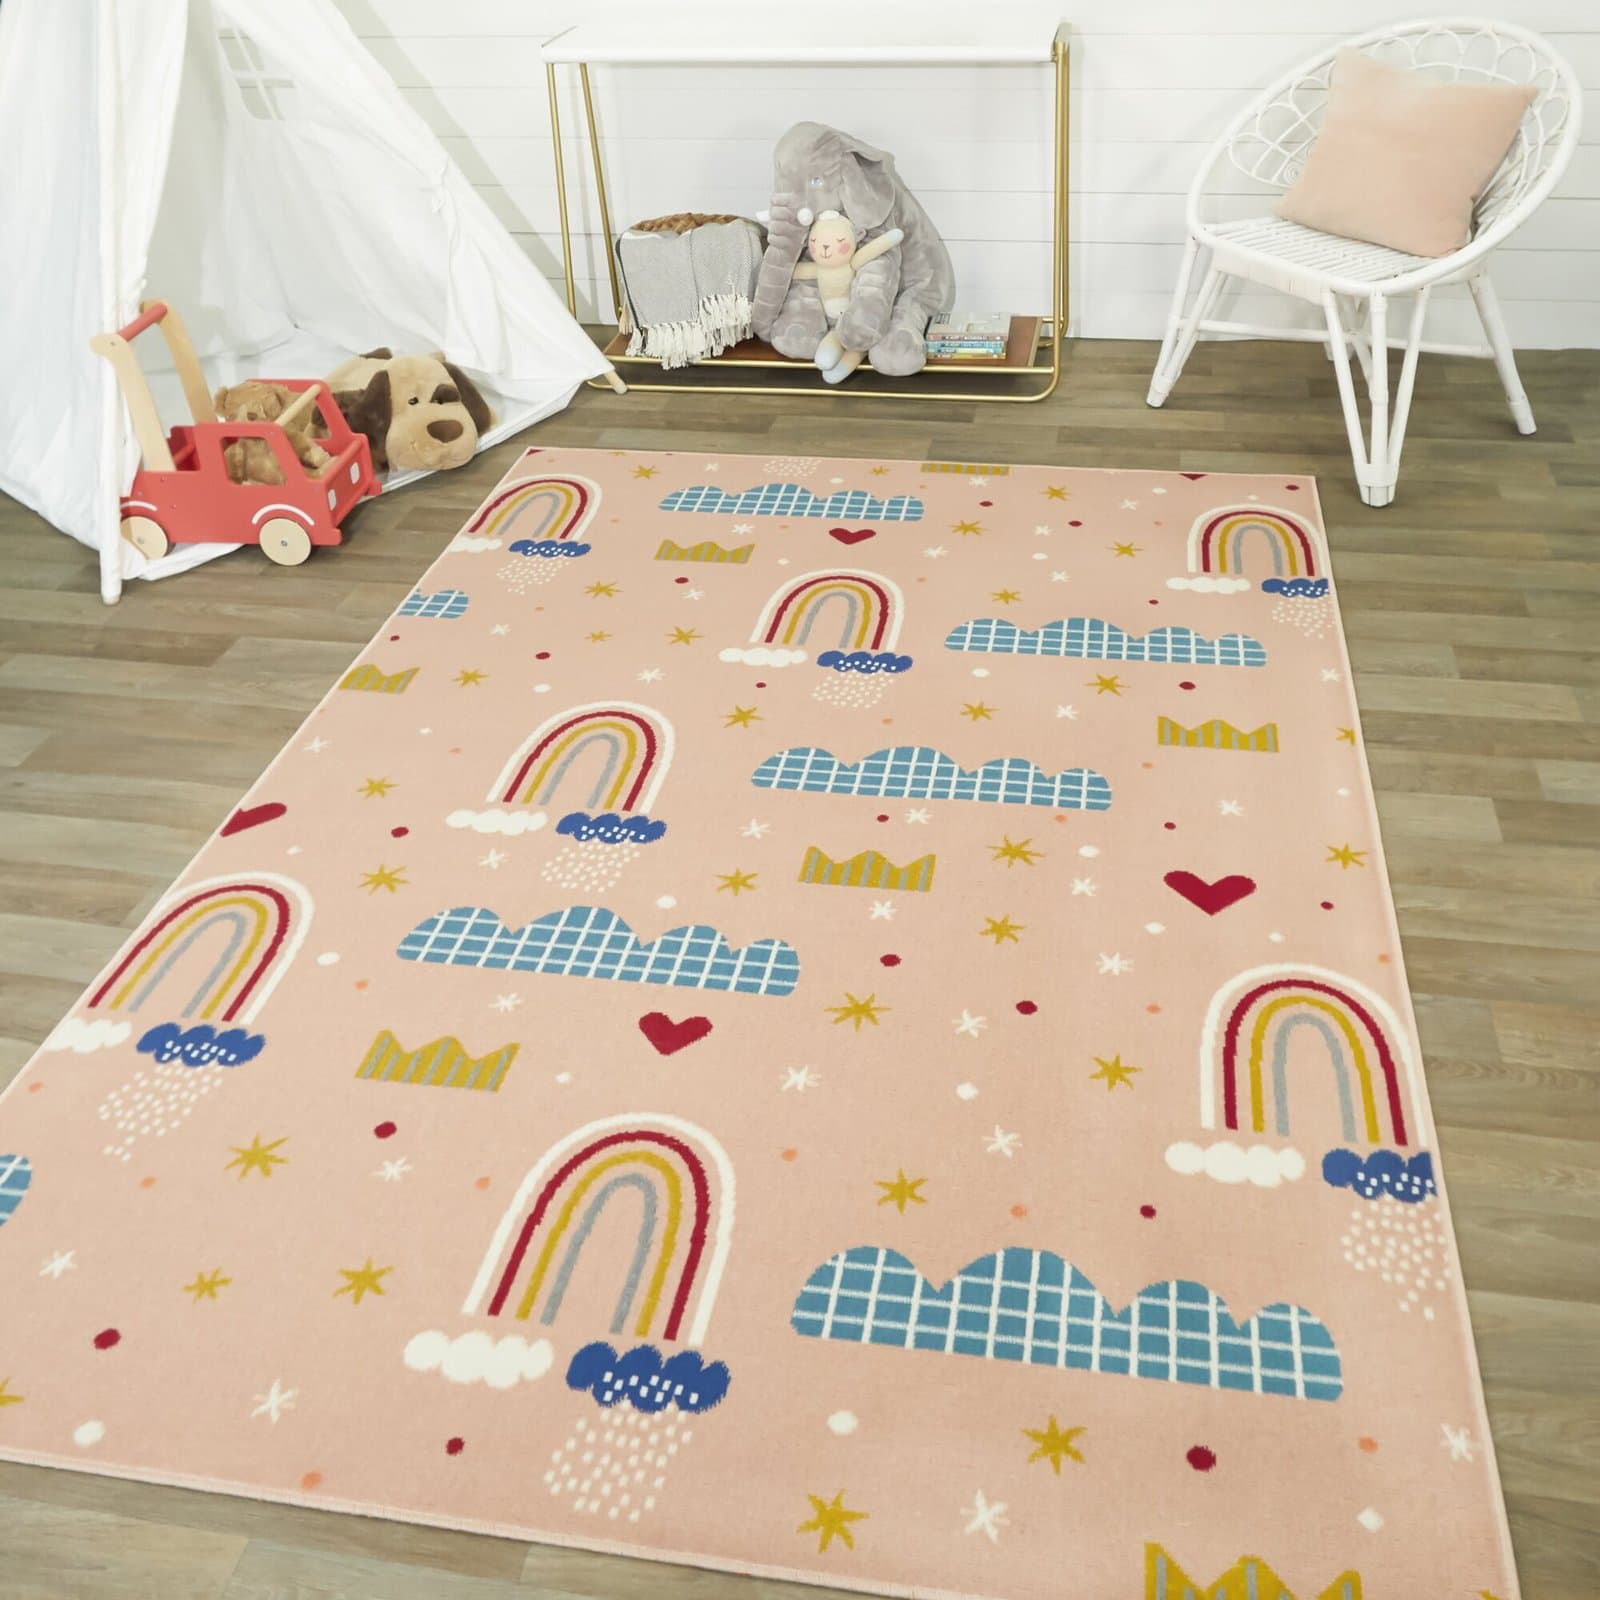 Use rugs to Create a Comfortable Play Space